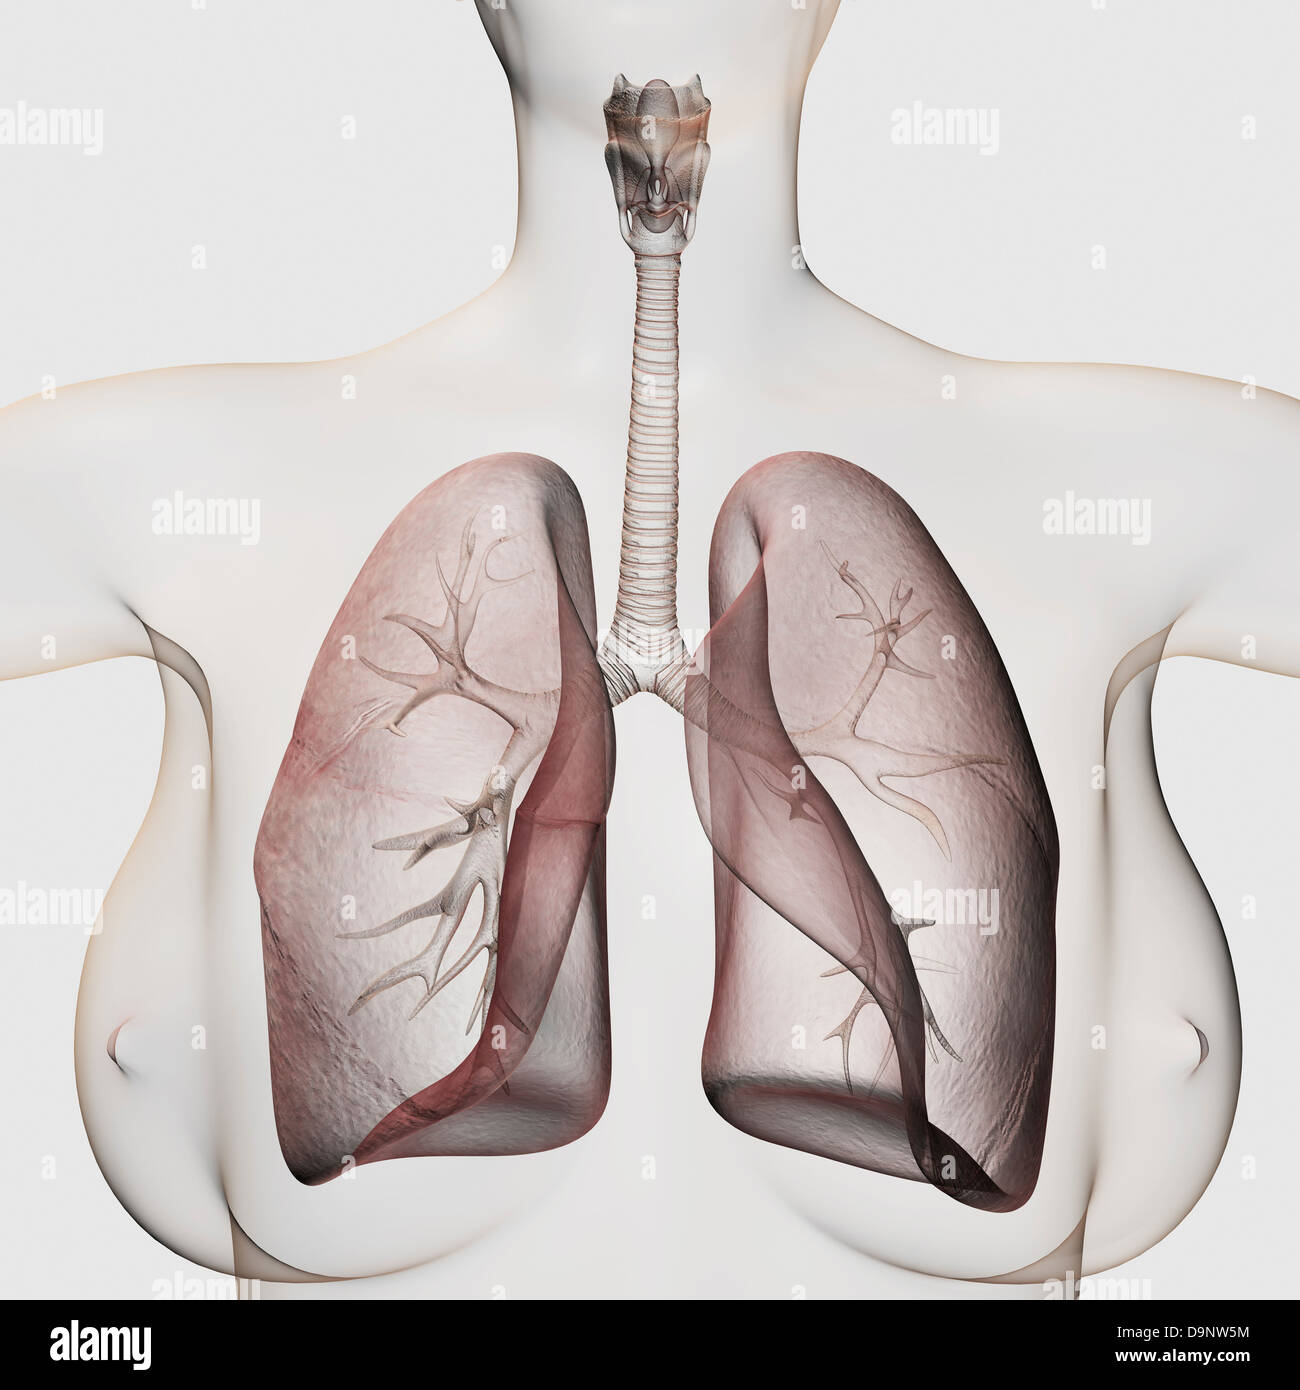 Three dimensional view of the female respiratory system, close-up. - Stock Image